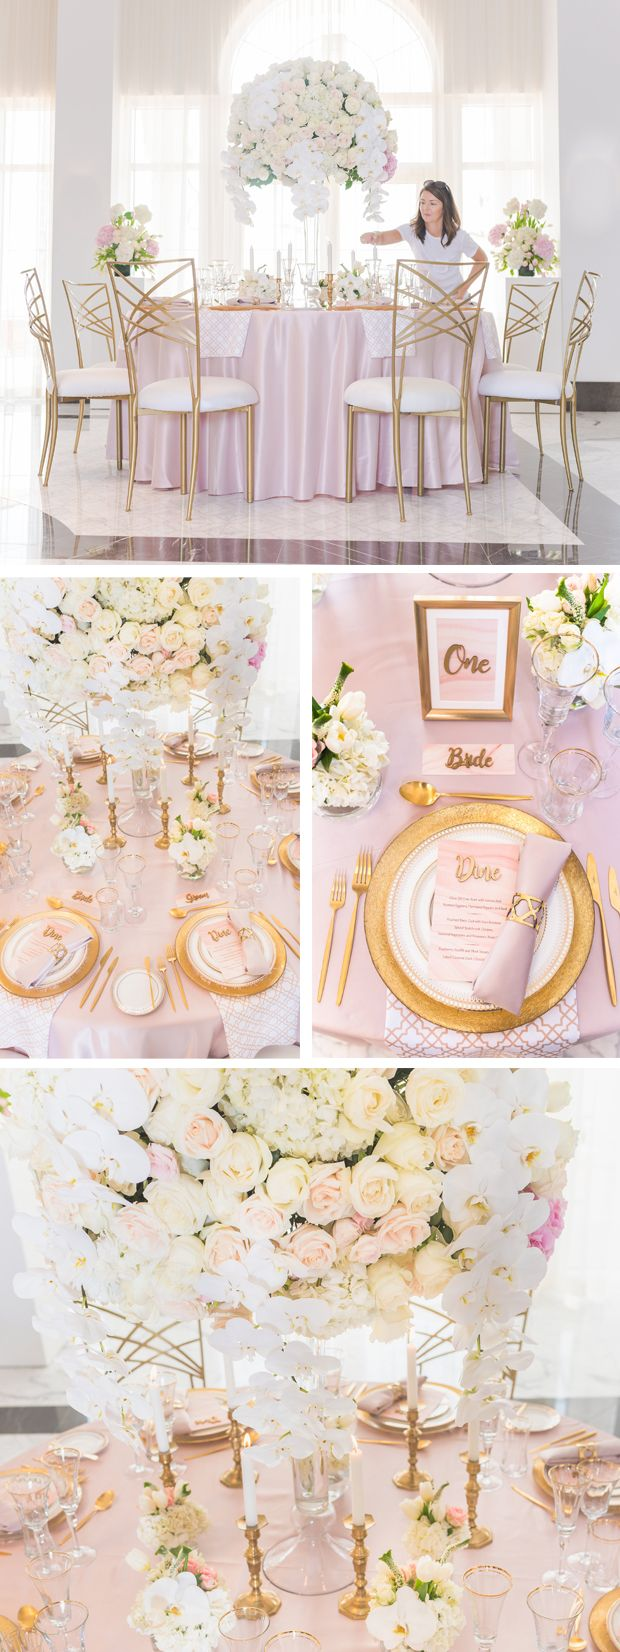 Wedding decorations gold and pink  Weure Head Over Heels for this Dreamy Elegant  Glam Wedding Décor